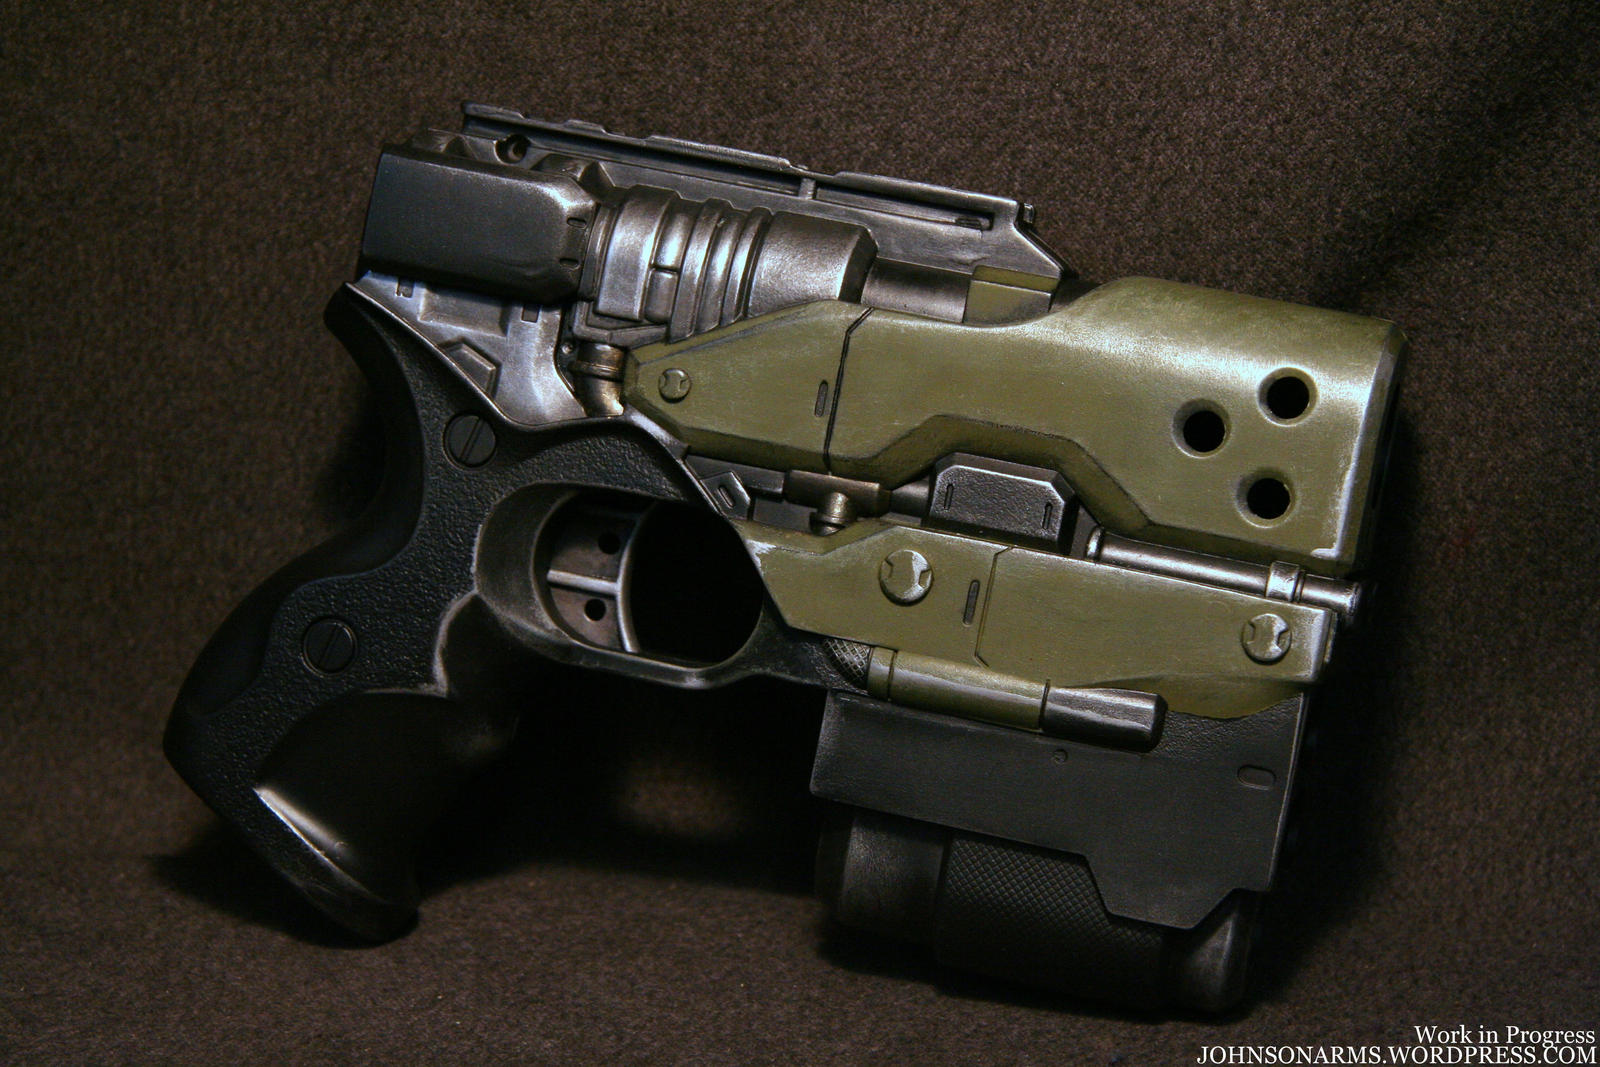 HALO Nerf Gun Prop Project by JohnsonArms